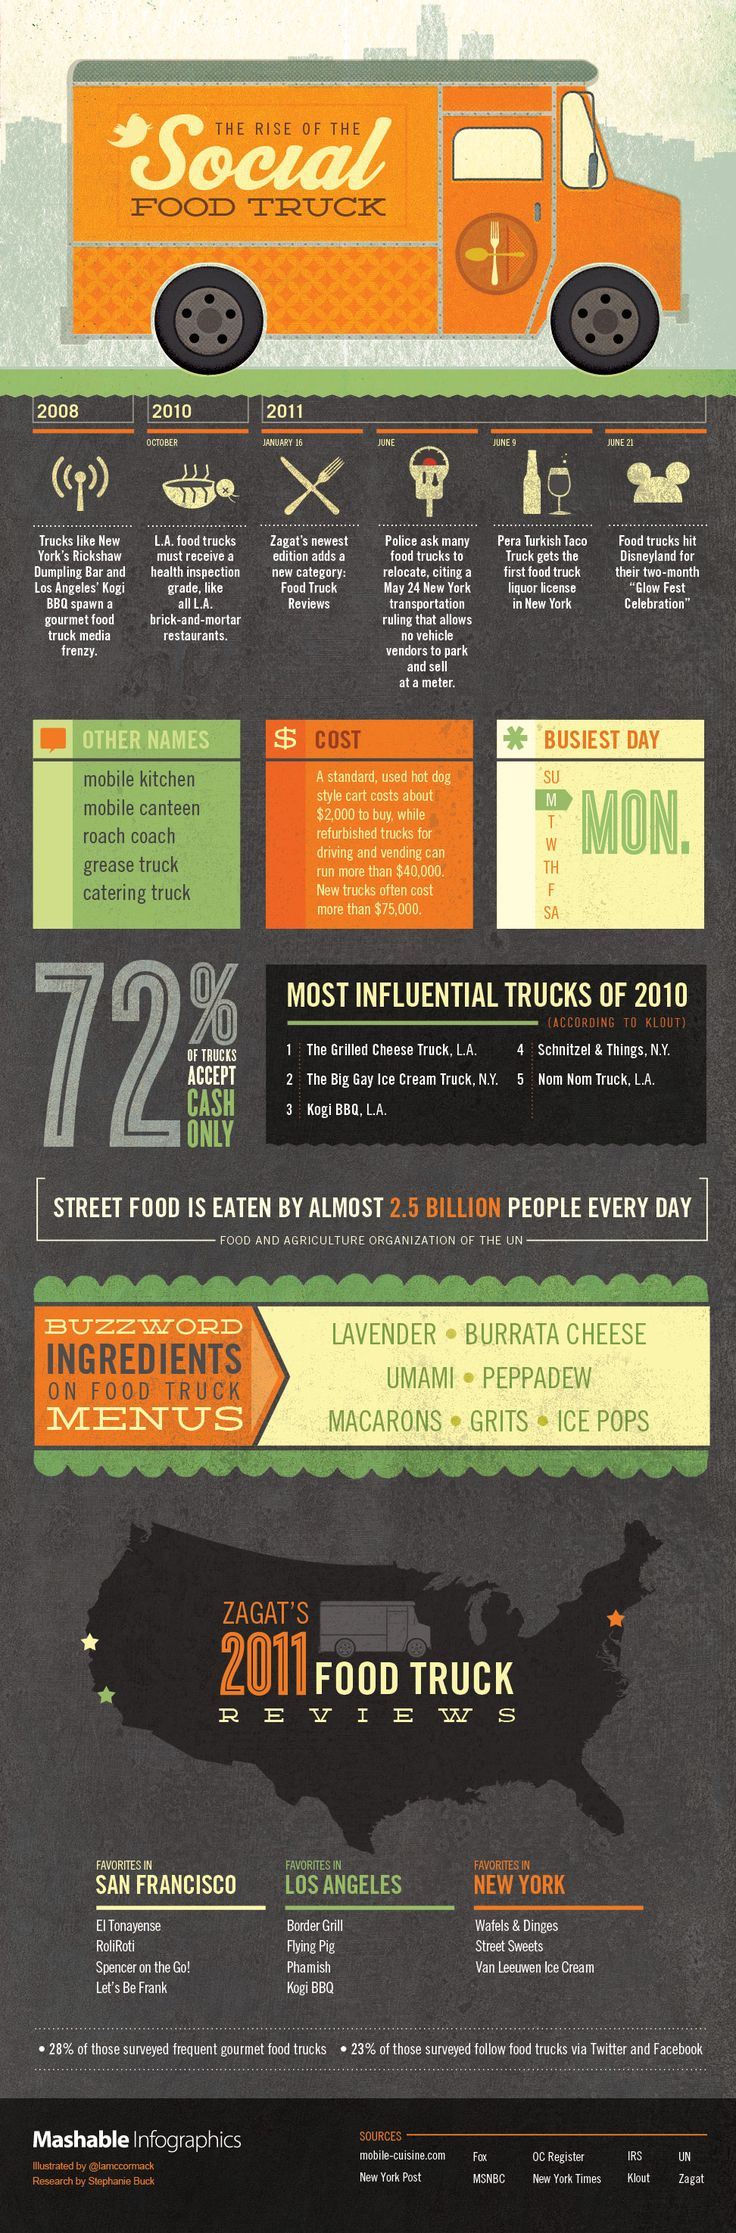 The rise of the food truck